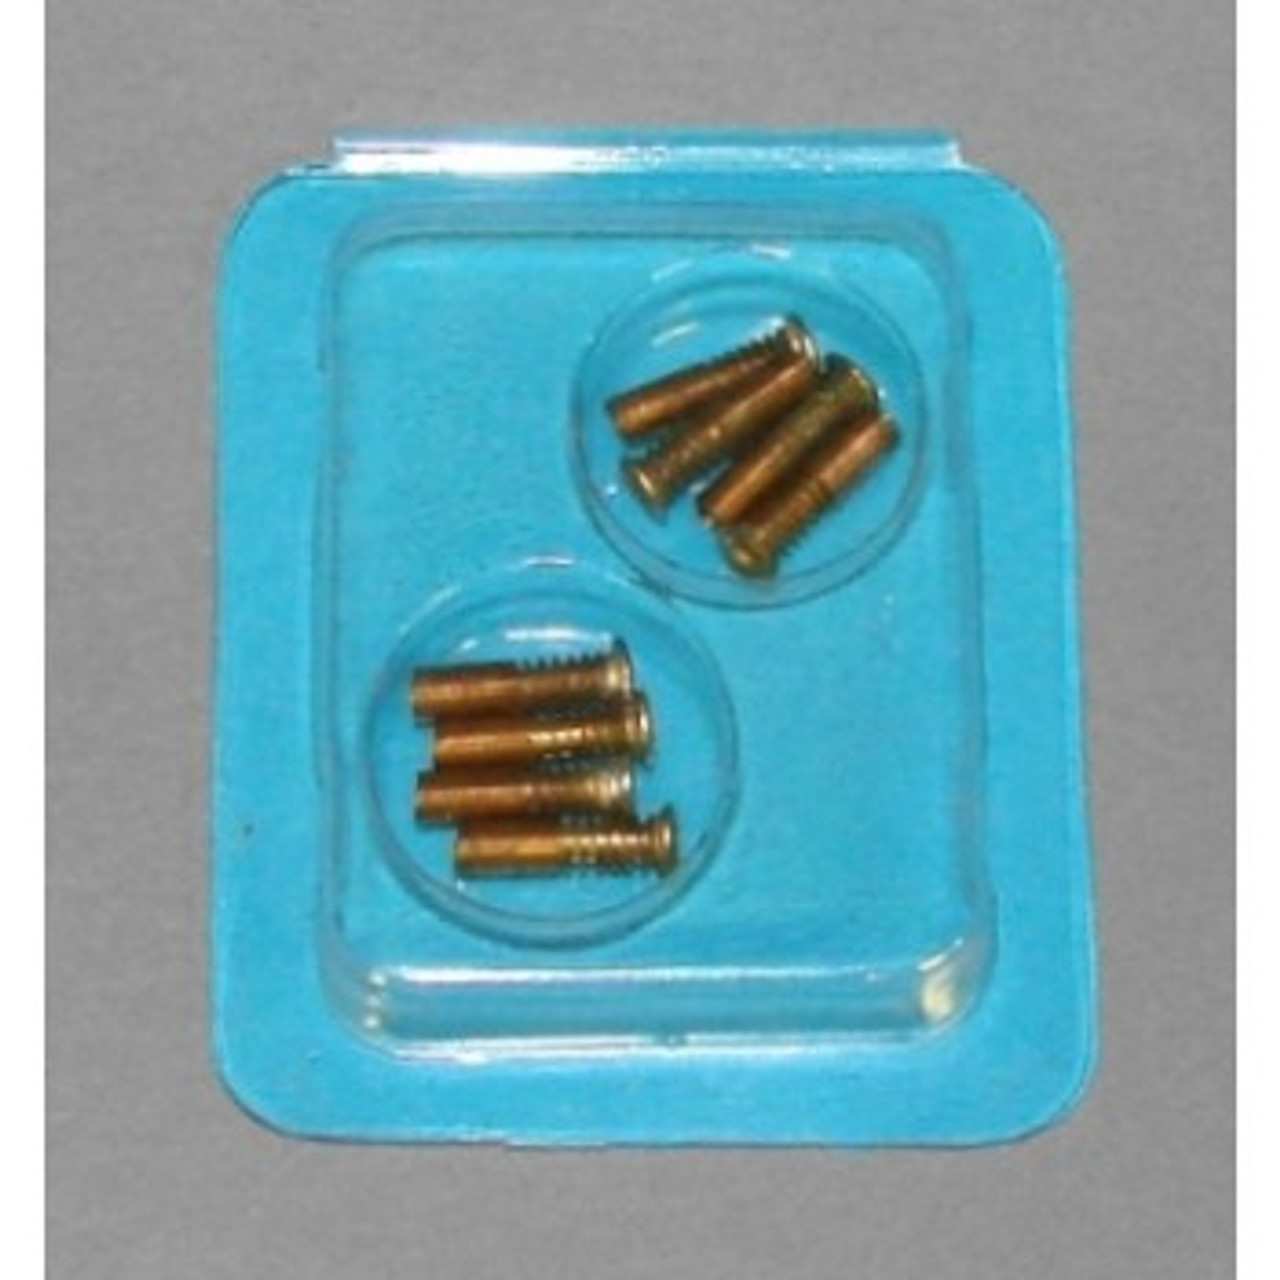 Dapol B806 Pick Up Springs For OO Track Cleaner Model Railway Accessories